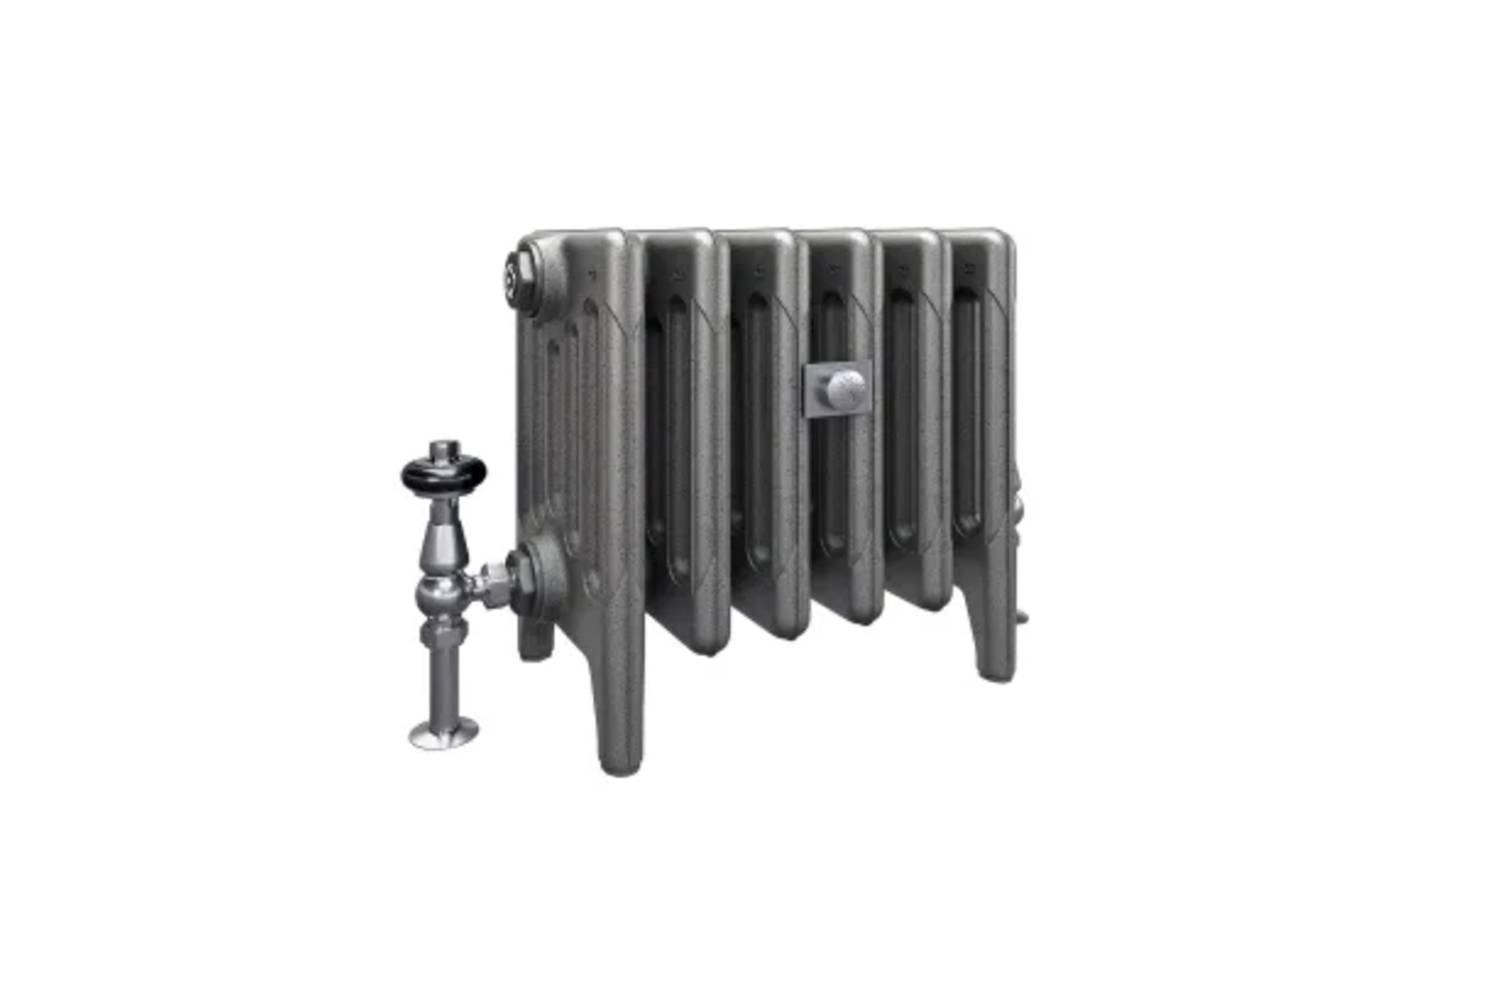 The black-painted radiator is from Castrads: the Mercury Radiator comes in a range of sizes/columns through Castrads.